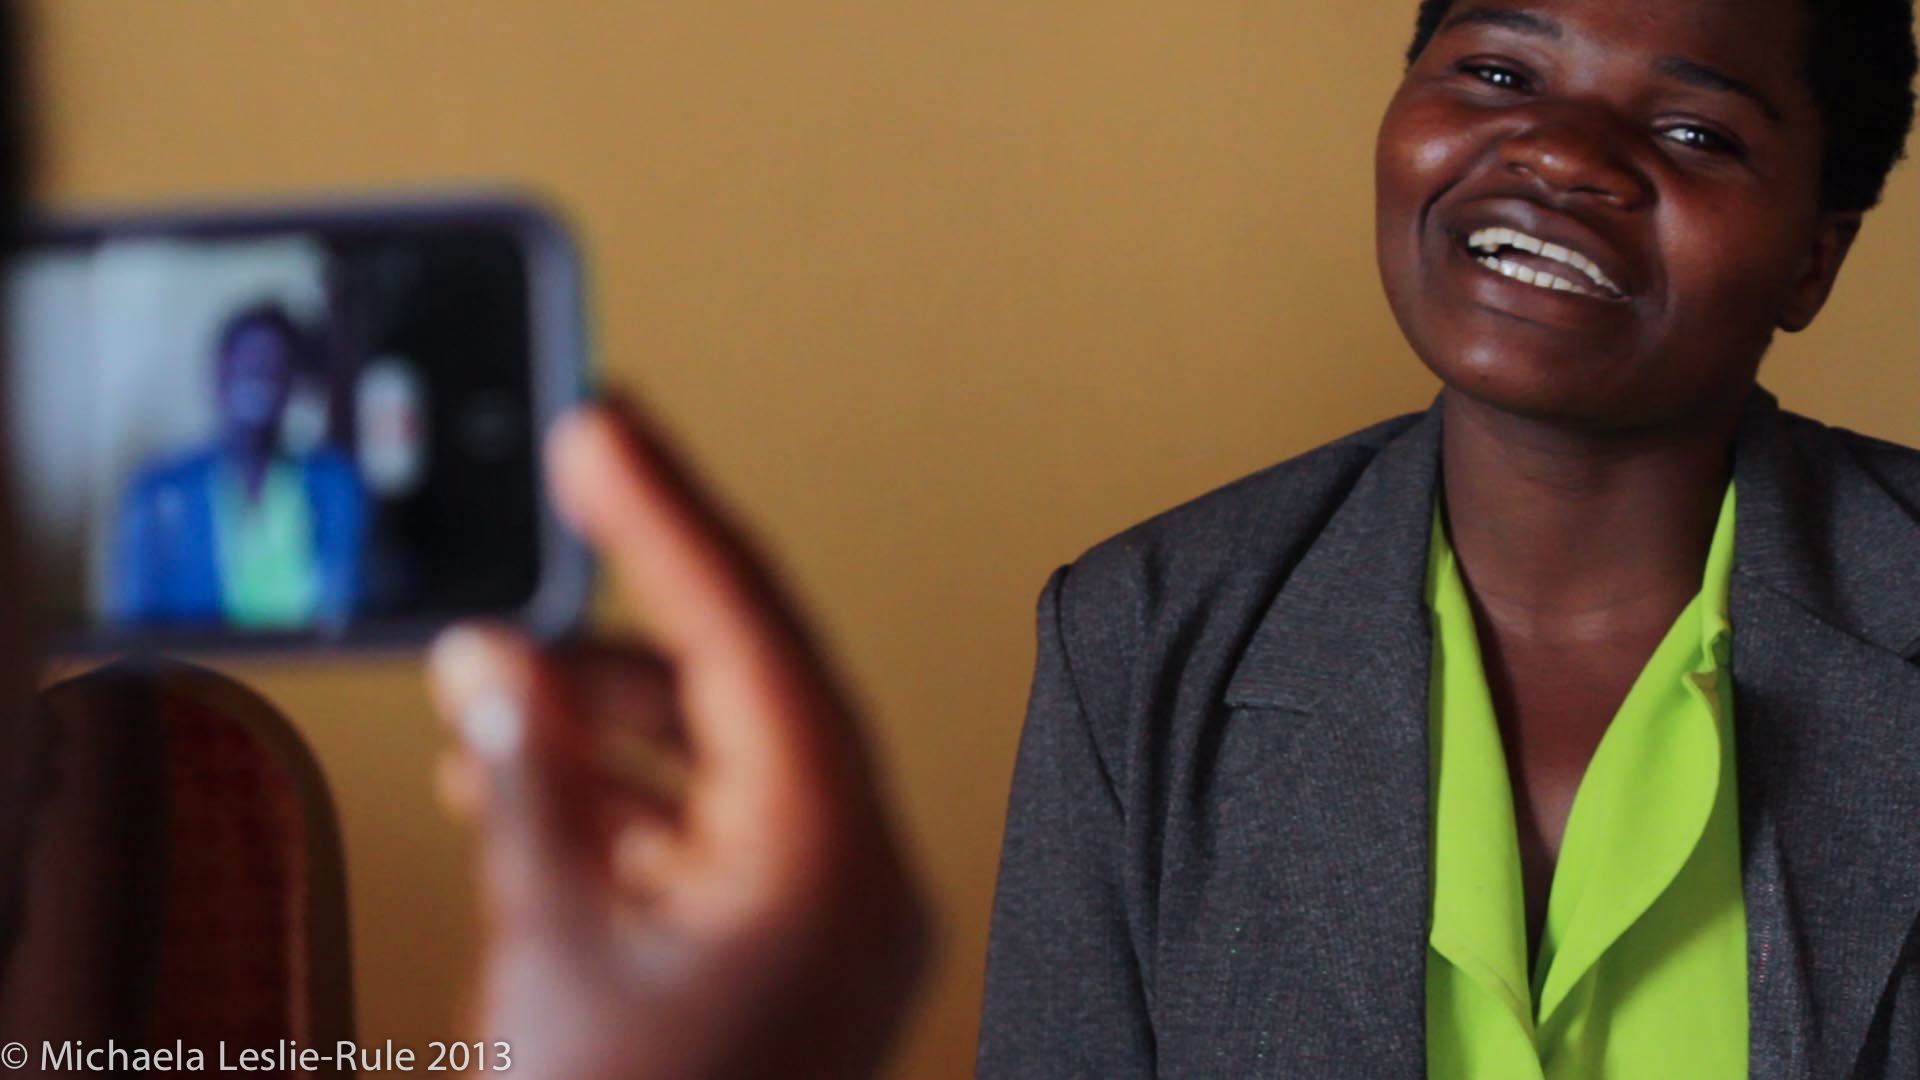 An African woman smiles as we see her and her image being recorded on an Apple iPhone